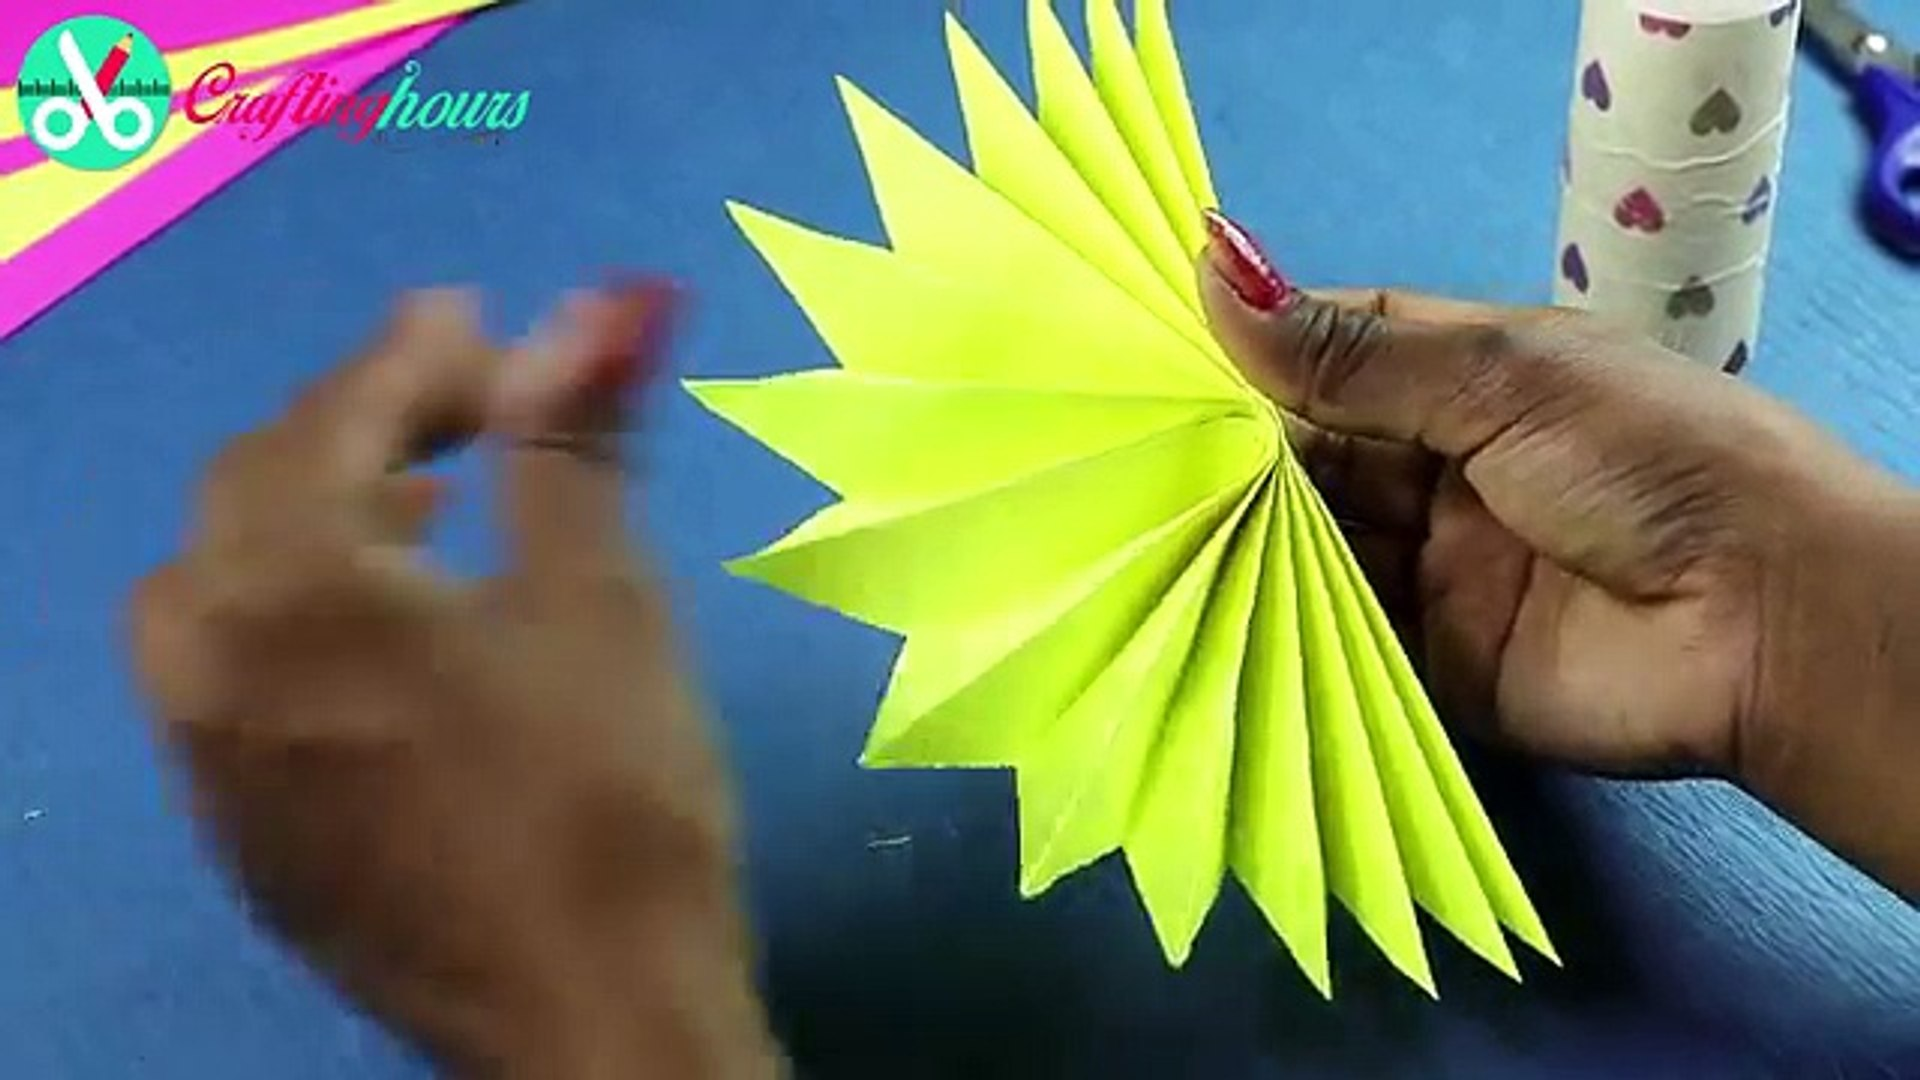 DIY Paper Rosettes Garland for Simple Party Decorations on Budget